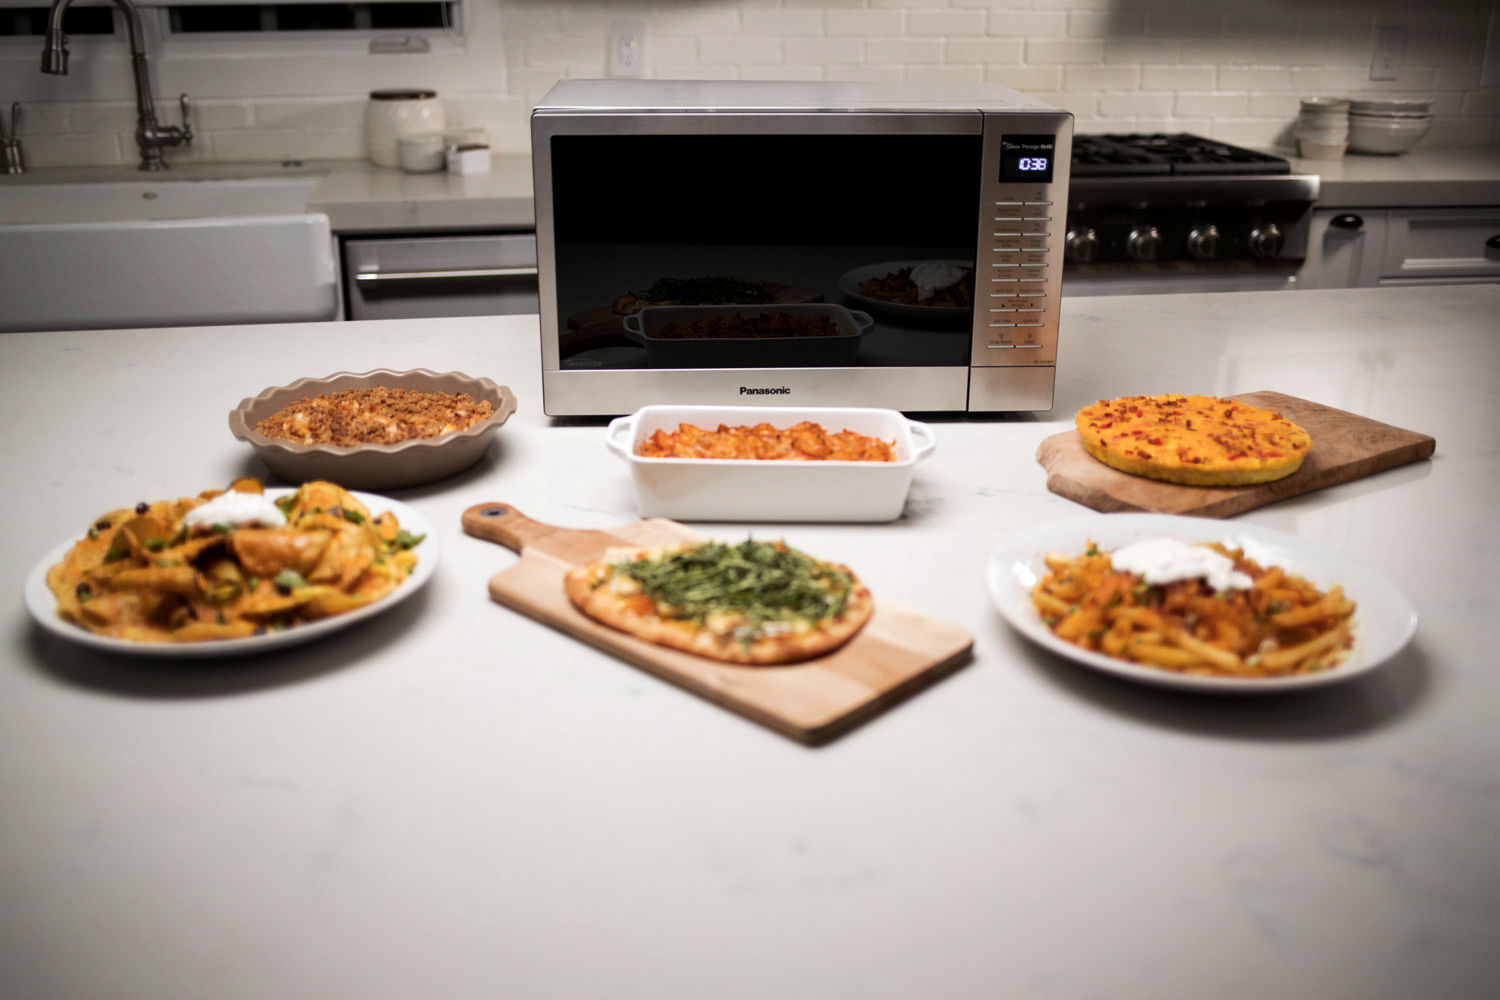 Panasonic Announces New Nn Gn68ks Microwave Oven With Inverter Technology Flashxpress Broiler Panasonic North America United States